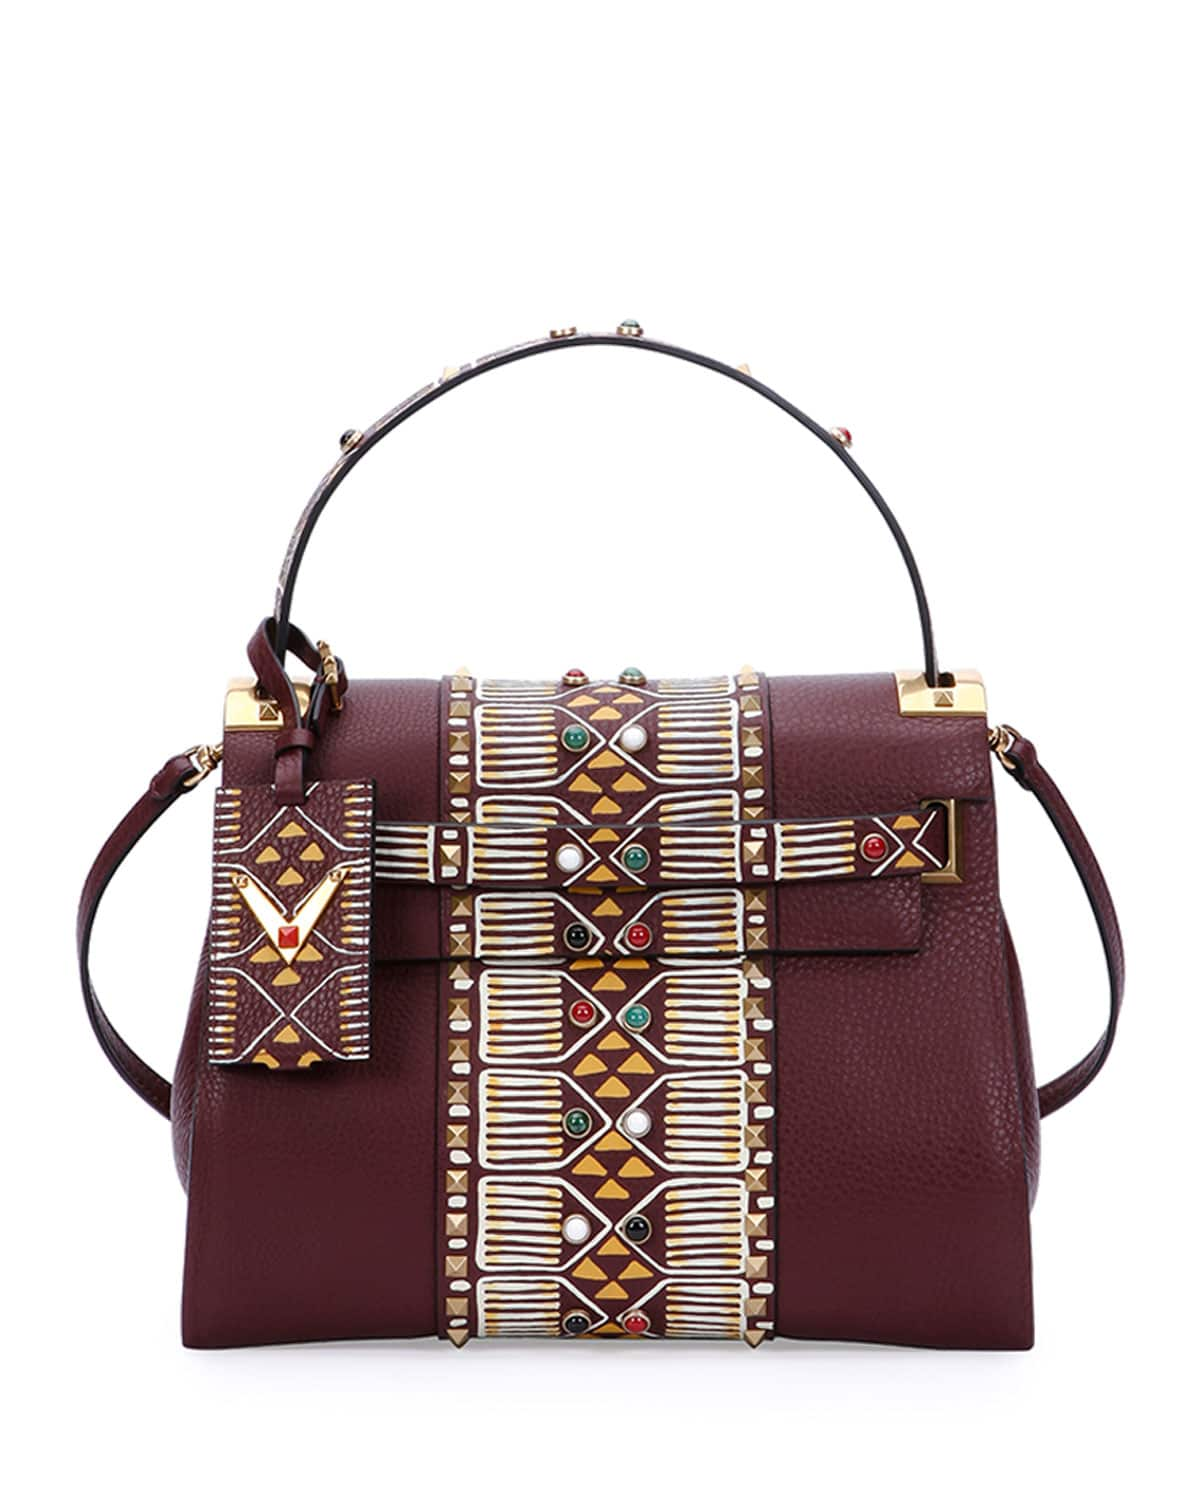 Valentino Spring/Summer 2016 Bag Collection – Spotted Fashion